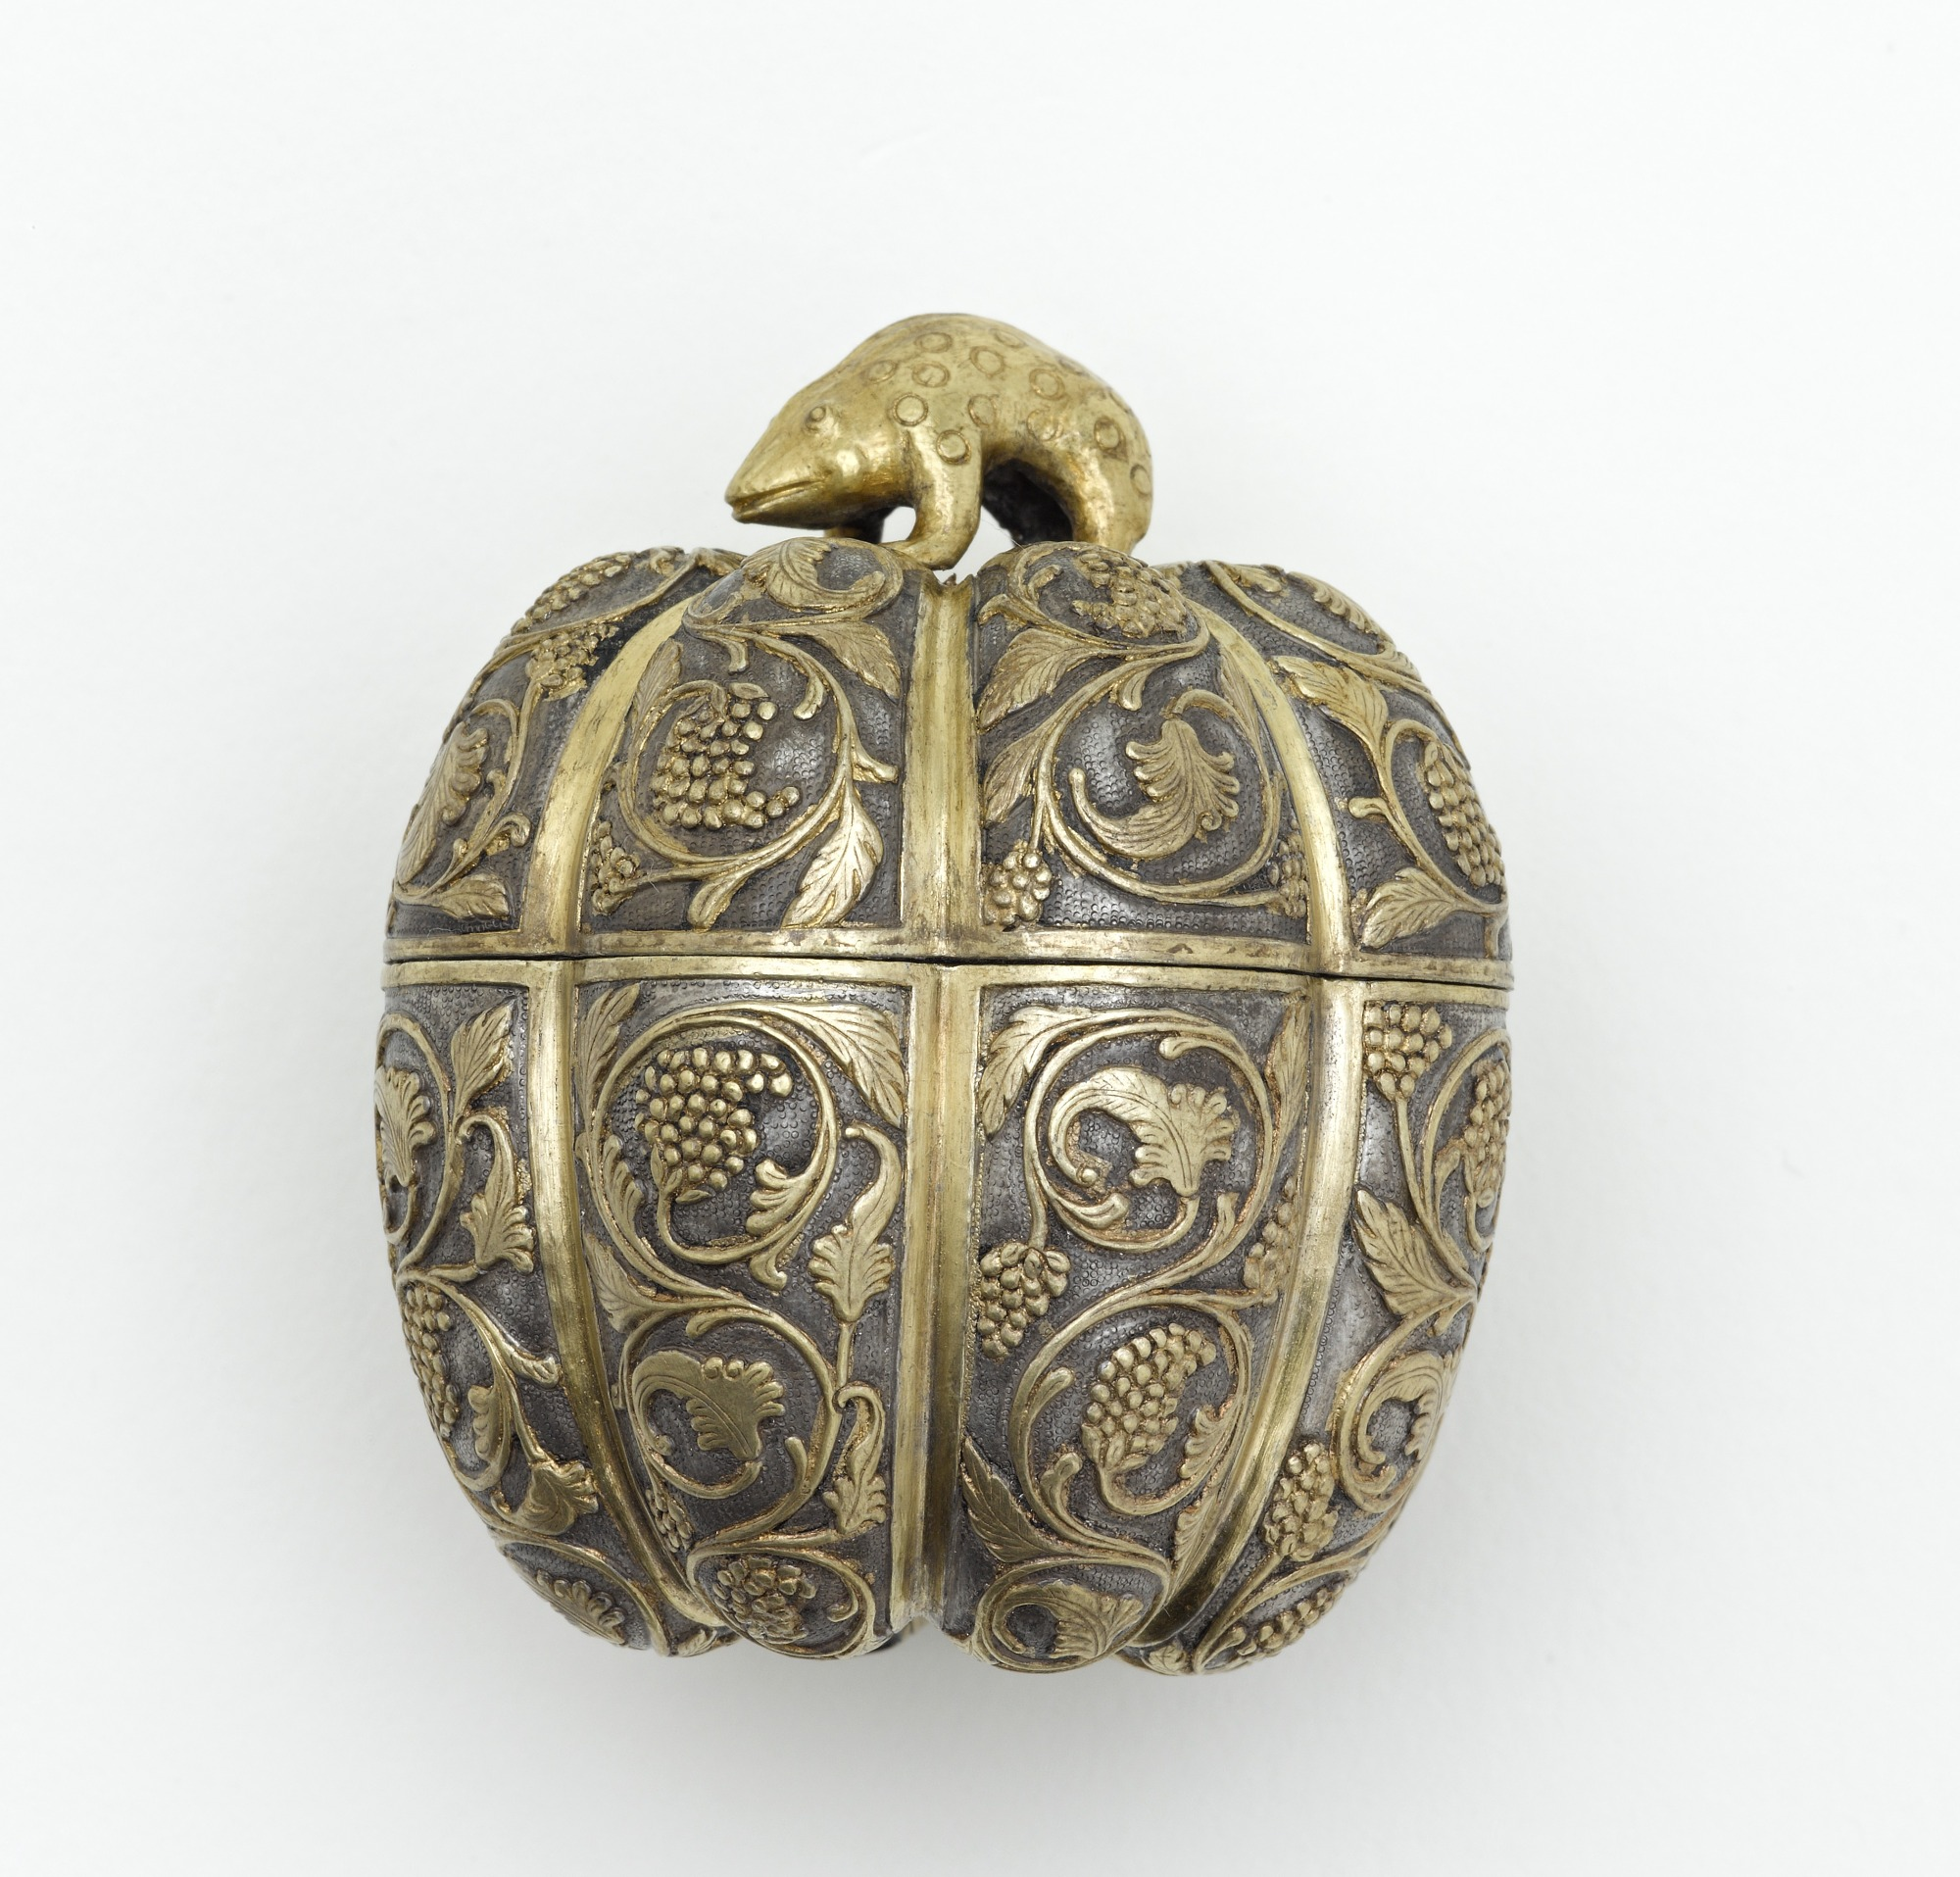 profile: Lidded box in the form of a melon with grapevines and knob in the shape of a rodent